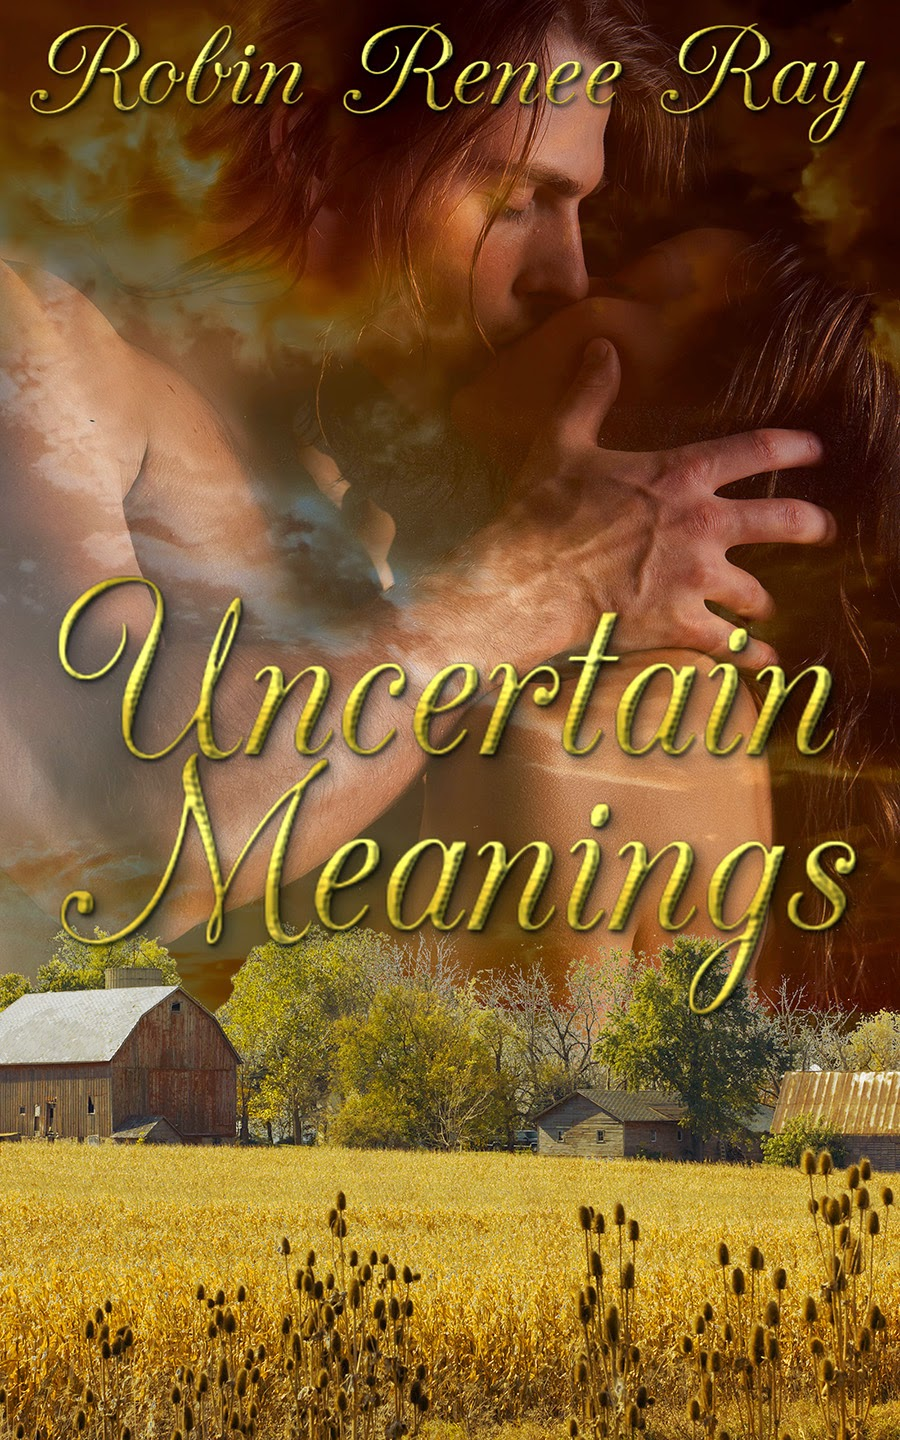 http://www.amazon.com/Uncertain-Meanings-Robin-Renee-Ray-ebook/dp/B00DV70V7G/ref=sr_1_8?s=digital-text&ie=UTF8&qid=1424193216&sr=1-8&keywords=robin+renee+ray